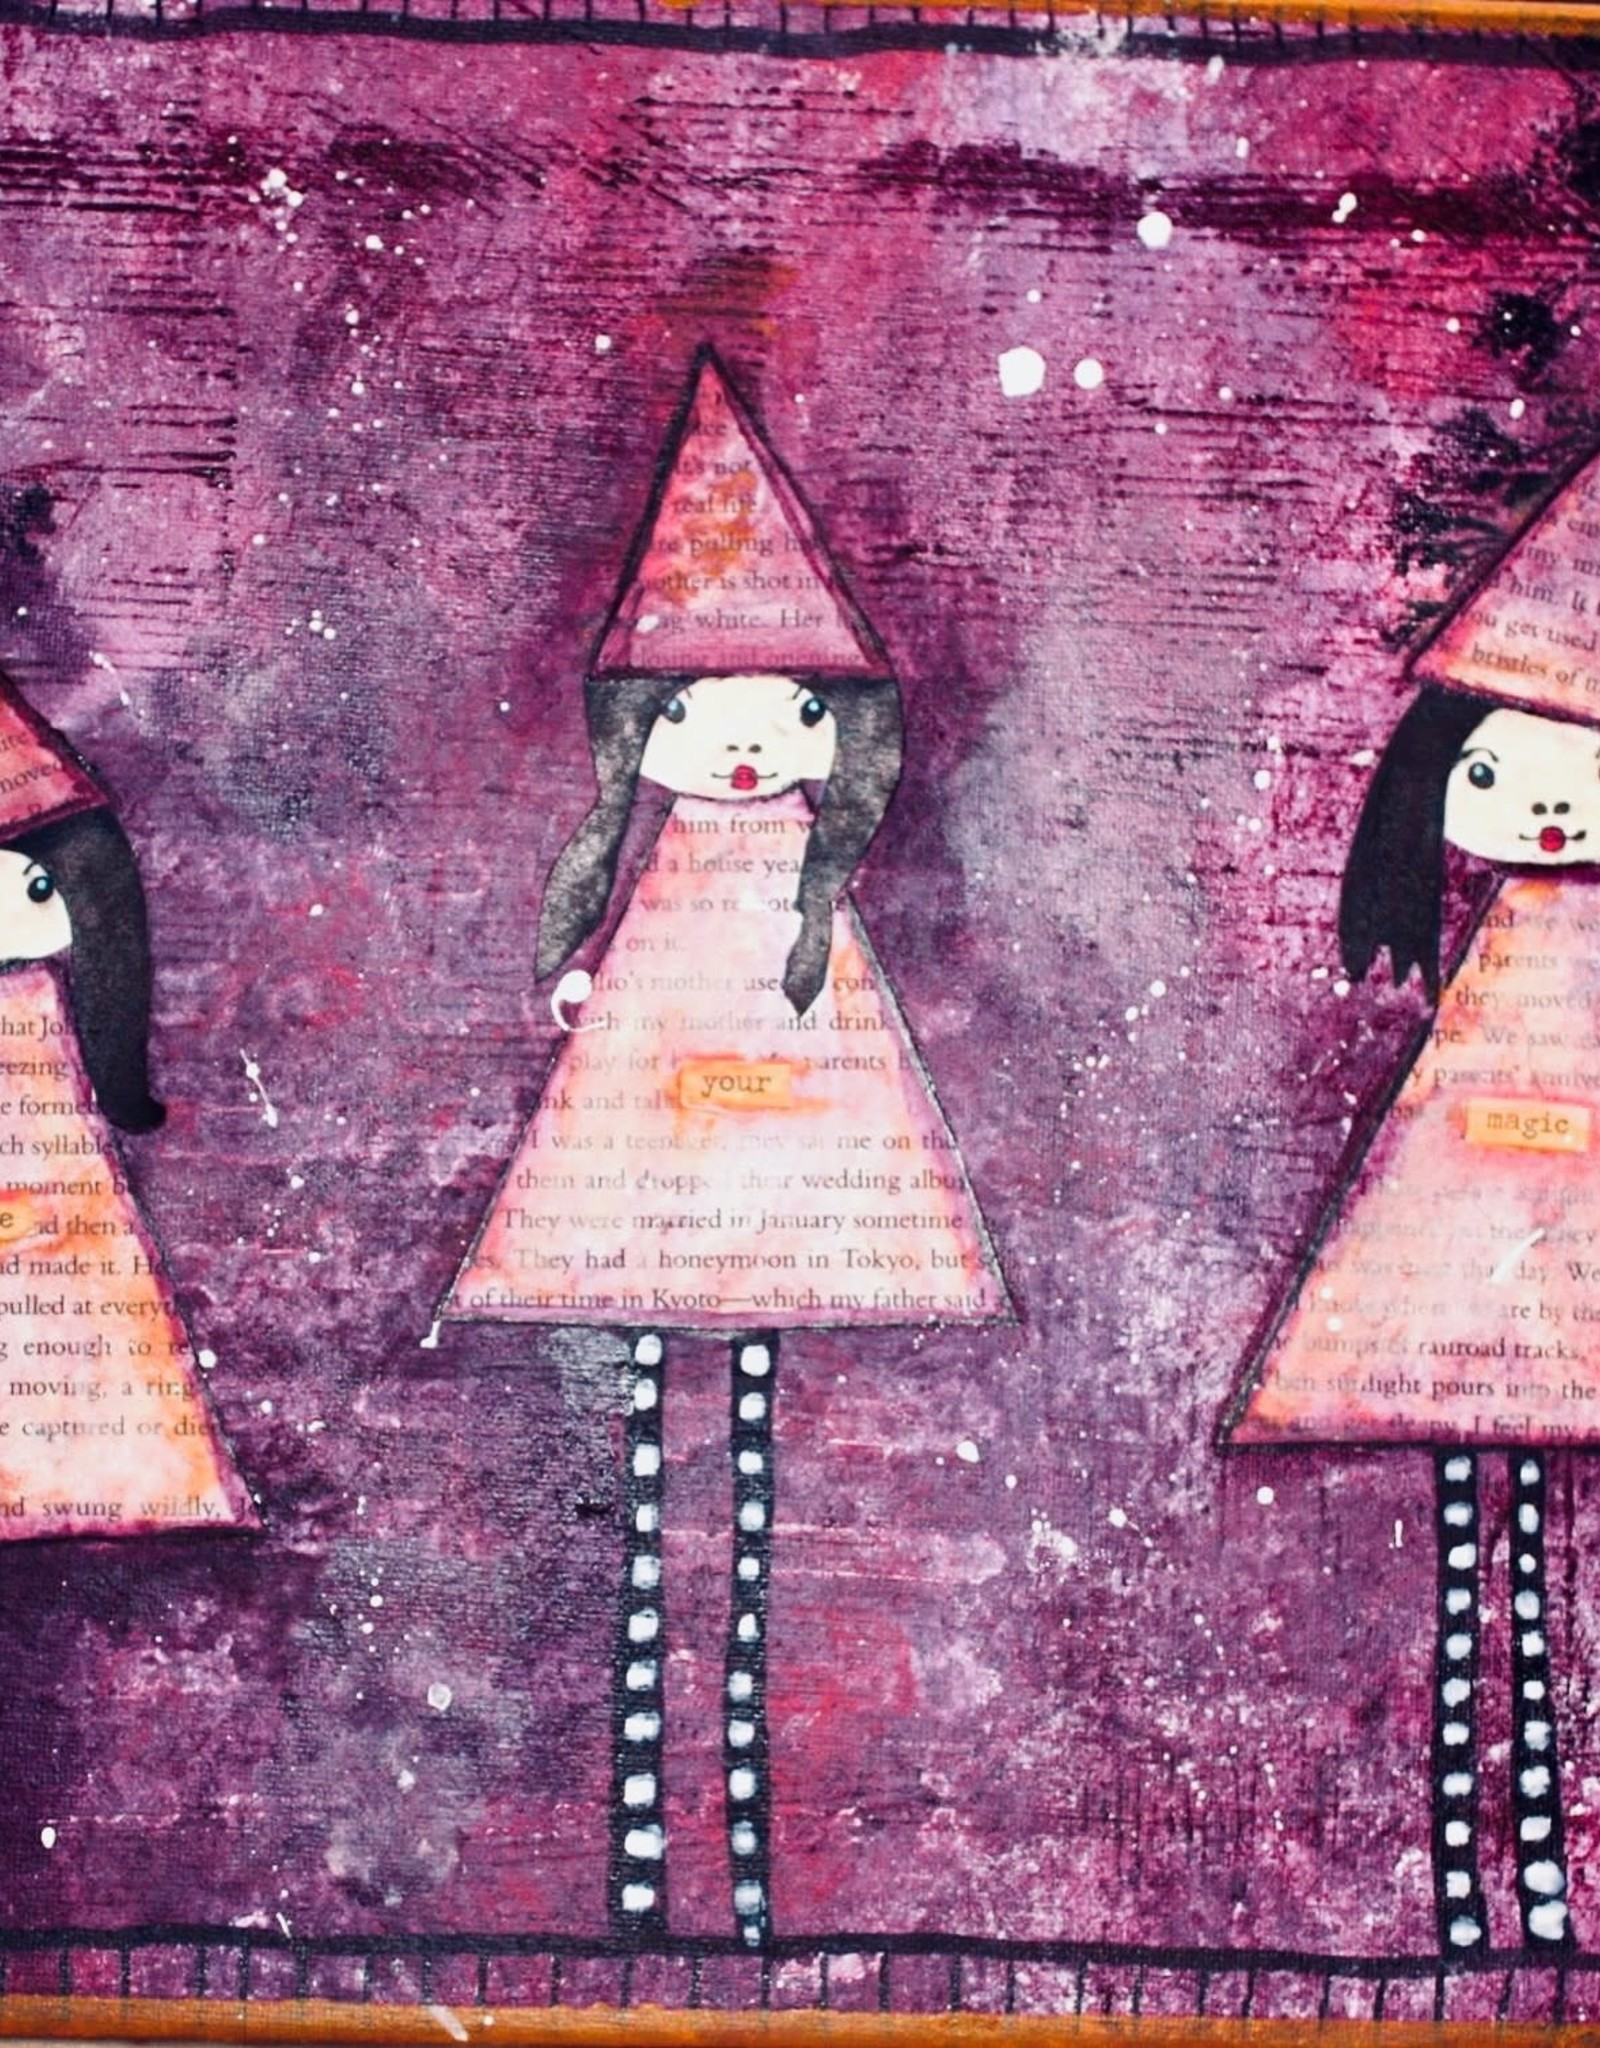 Melissa K Mixed Media Art class 3 Witches Thurs Sept 30 6:00 pm to 8:00 pm